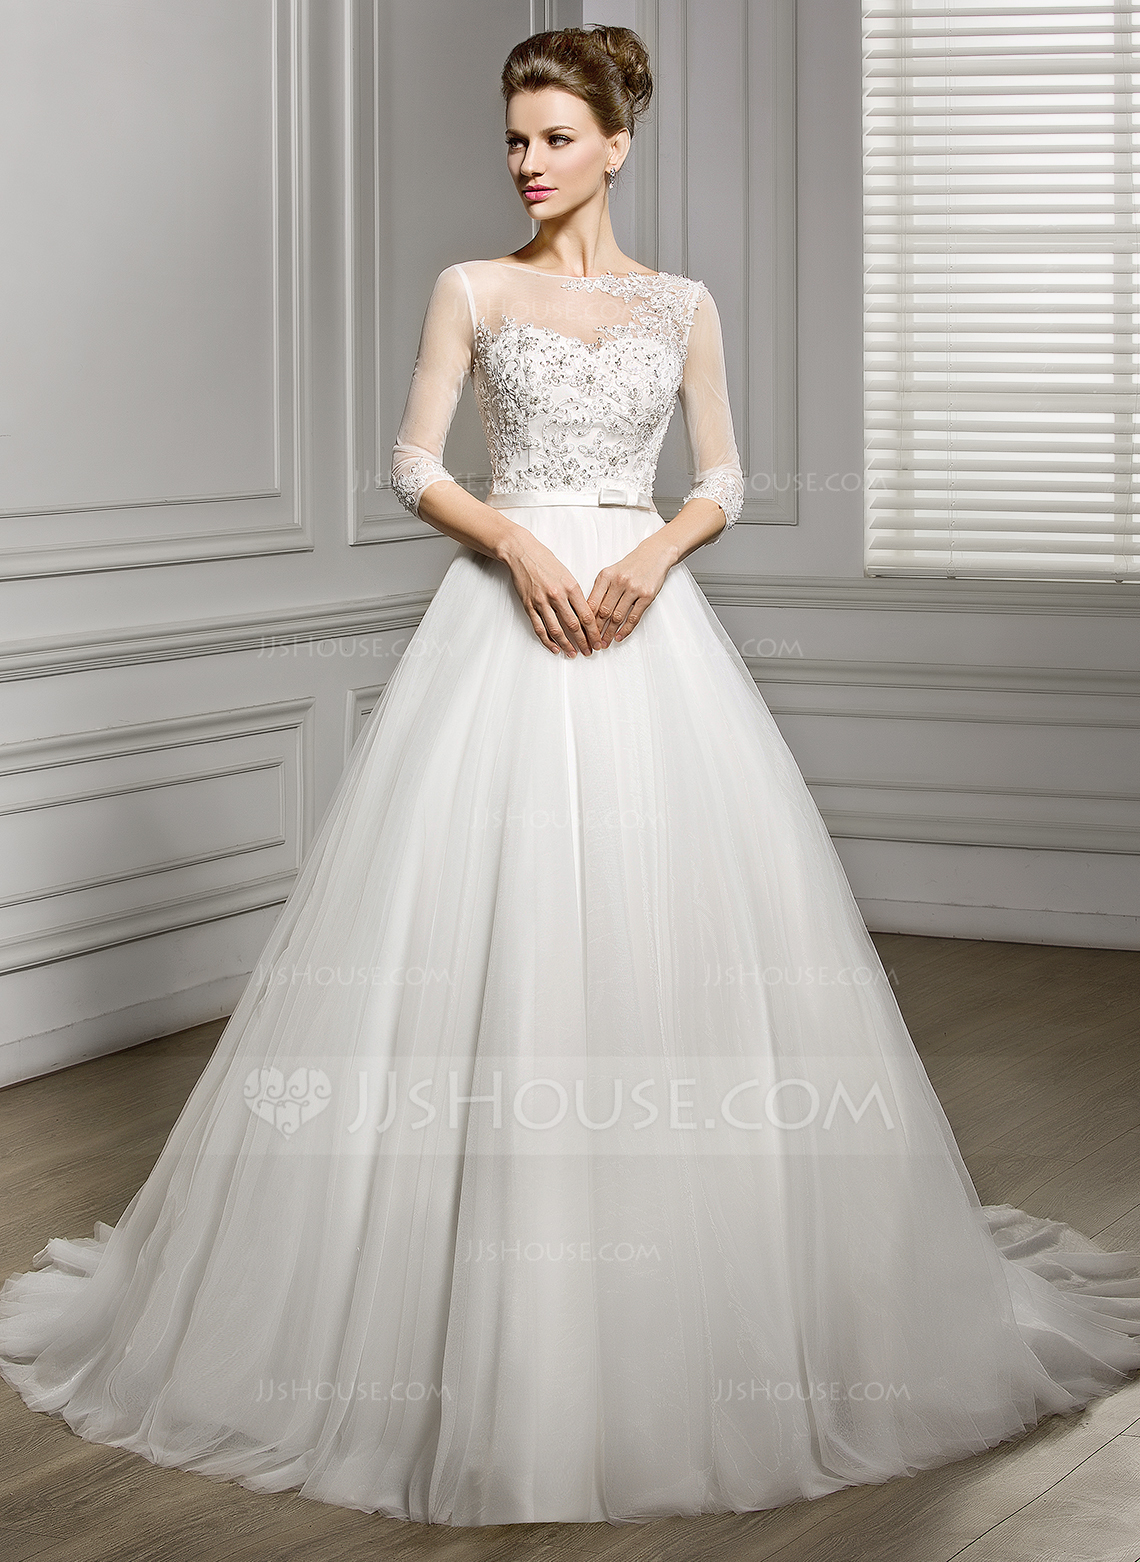 A Line Princess Scoop Neck Court Train Tulle Wedding Dress With Beading Appliques Lace Sequins Bow S g jjshouse wedding dress Home Wedding Dresses Loading zoom